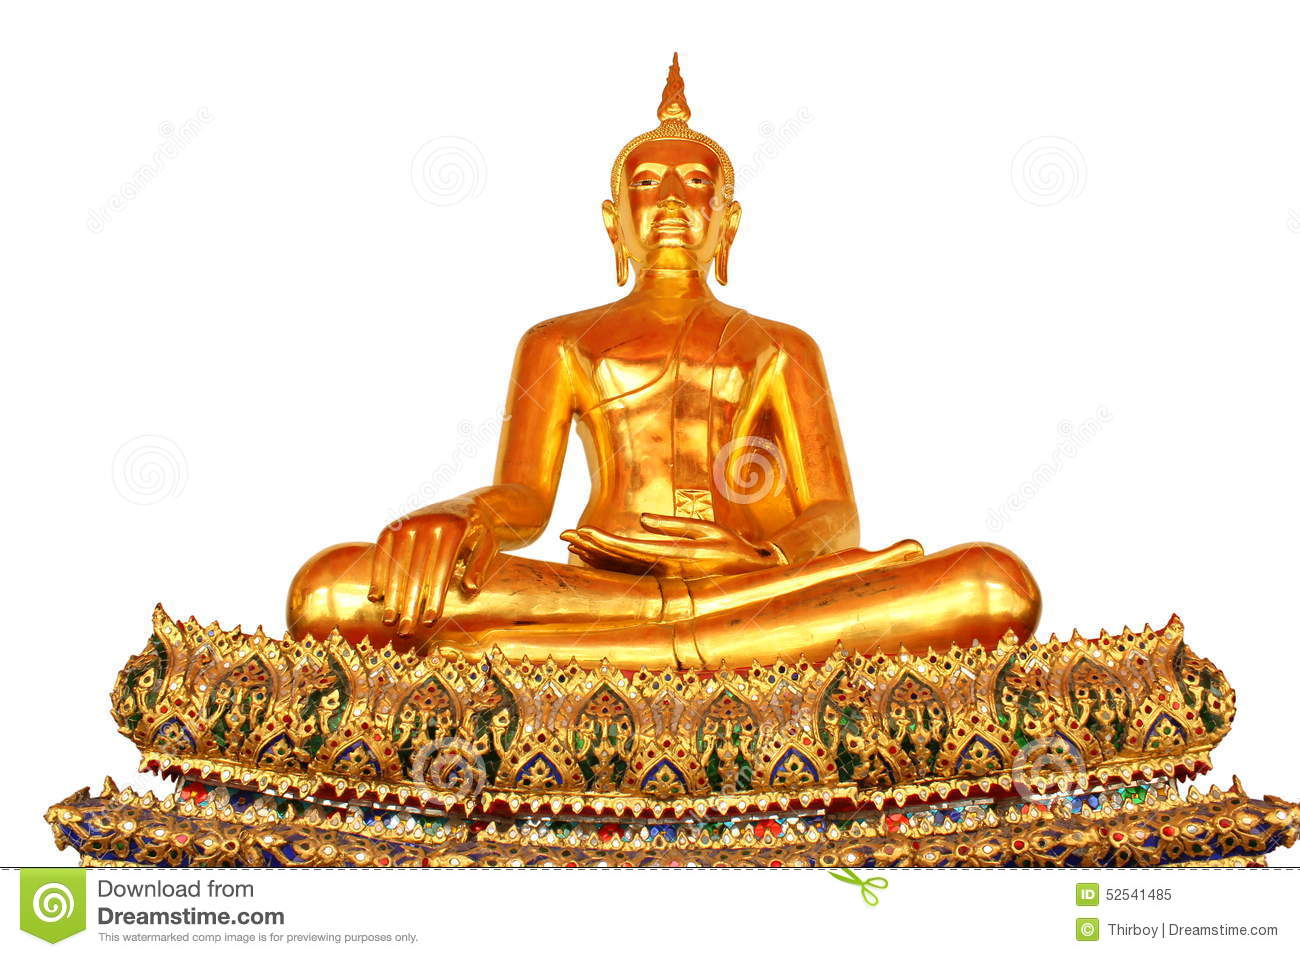 buddhist singles in corydon Friday, april 11, 2014 ew0 $rn ichmo0 nd news more at wwwrichmond-newscom, on facebook or on twitter@therichmondnews free home evaluation call now.